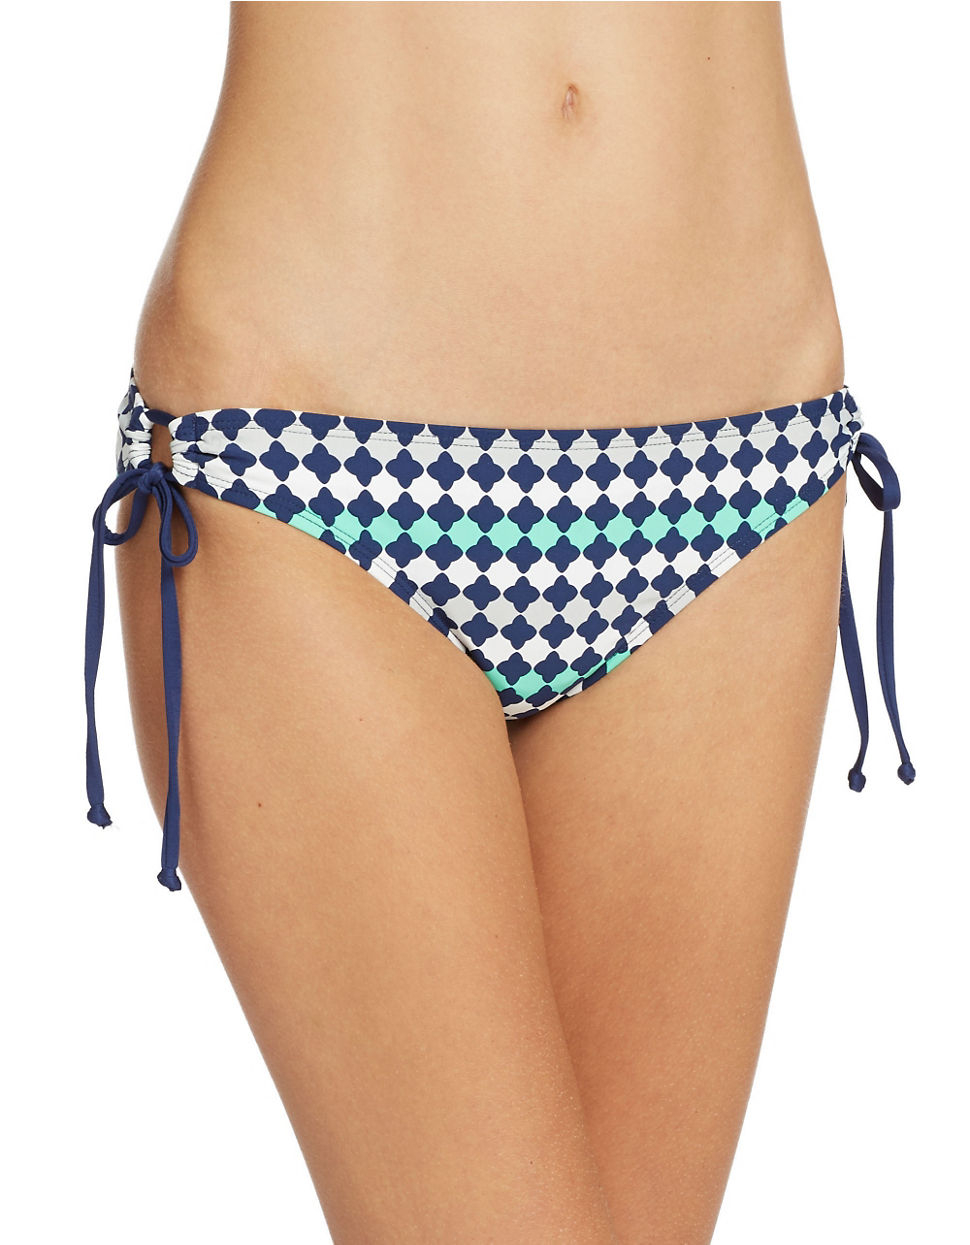 Low Rise Bikini Bottoms for Moderate Coverage by VENUS